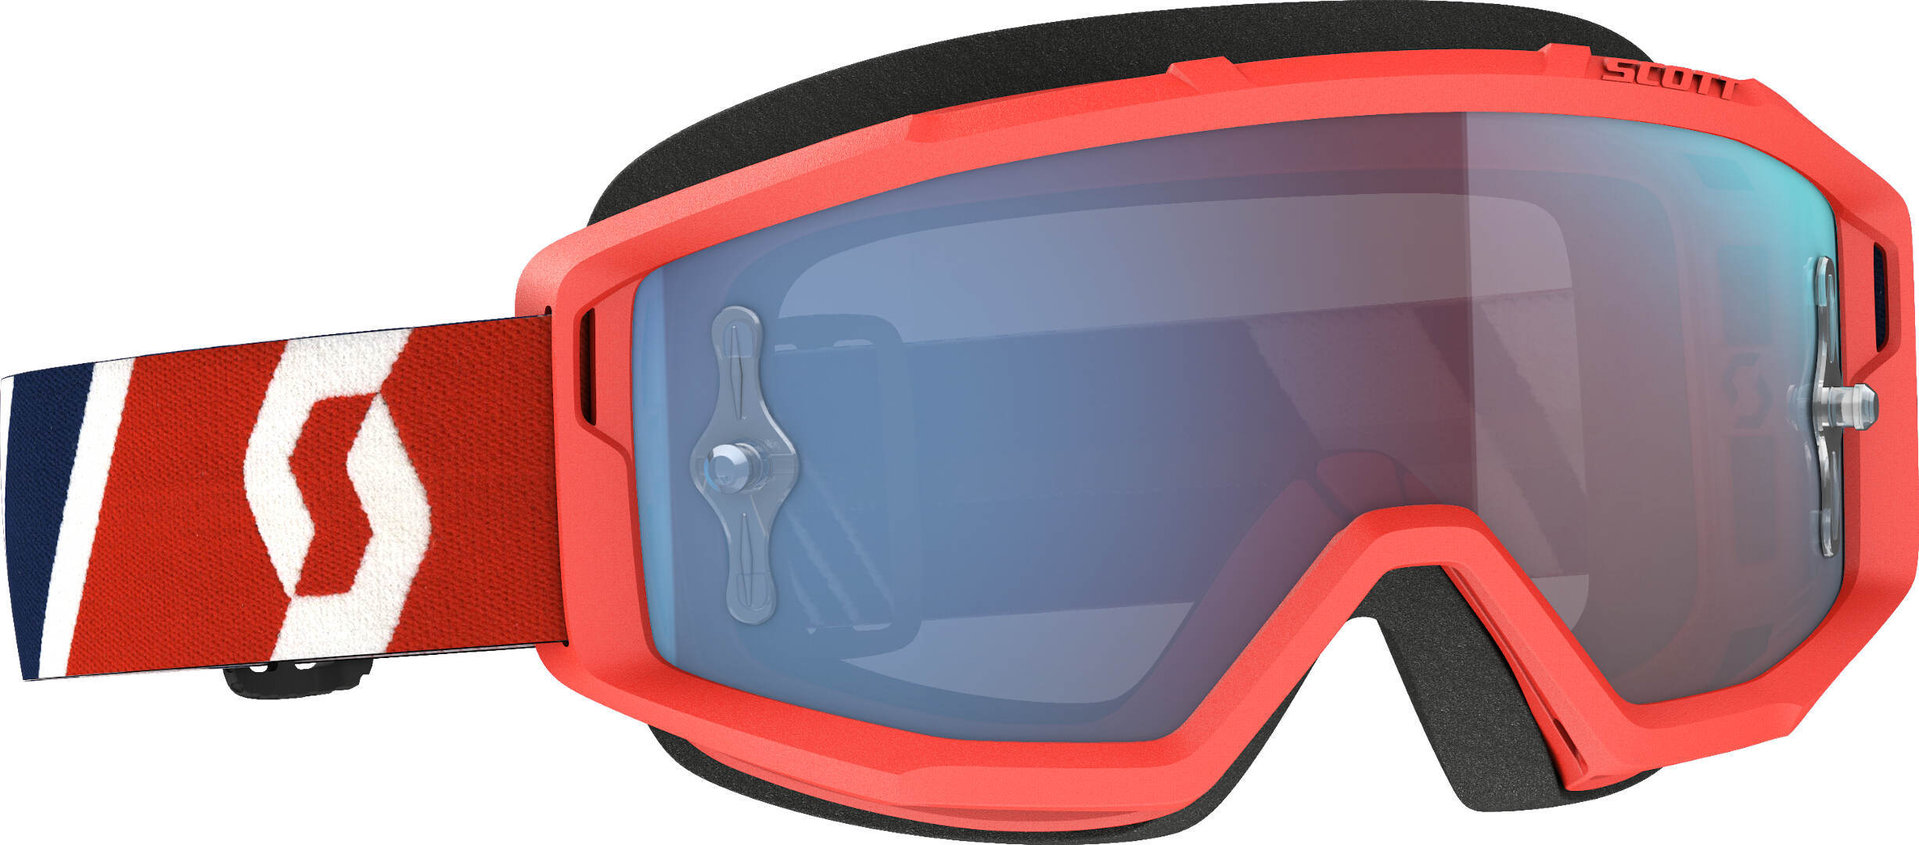 Scott Primal red/blue Motocross Goggles, blue-red, blue-red, Size One Size from Scott